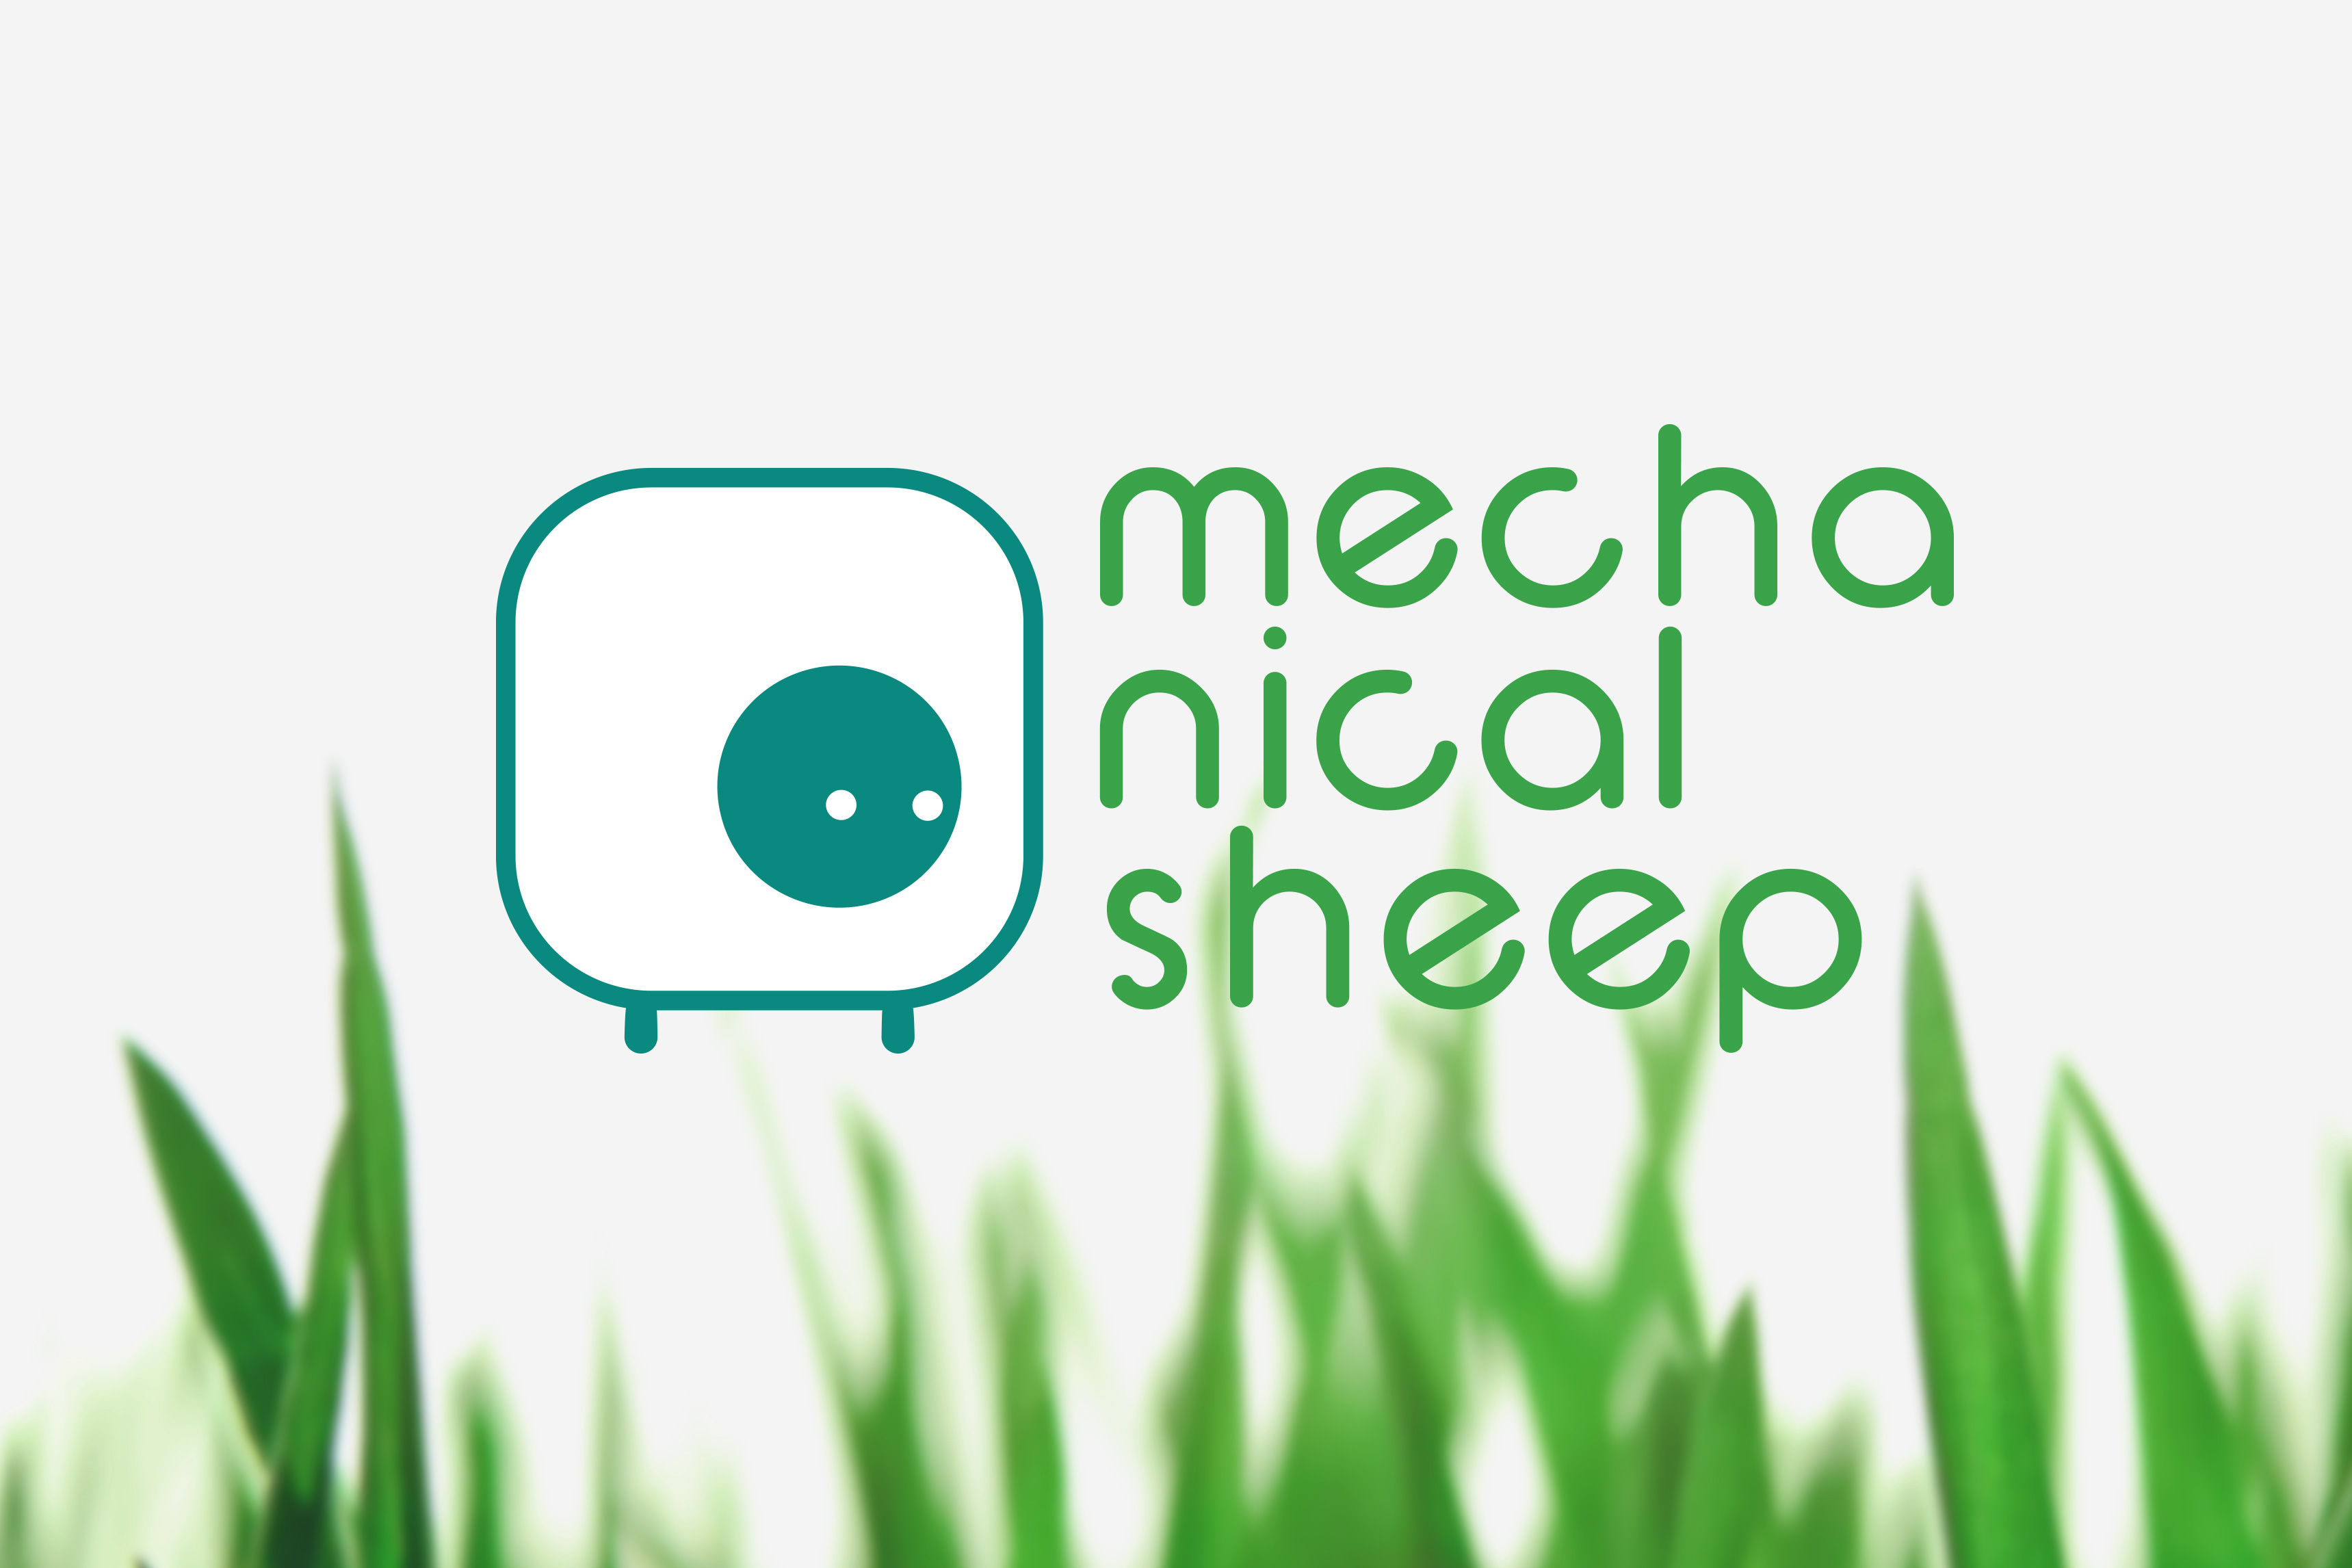 mechanical_sheep_logo_remion_design_2019t